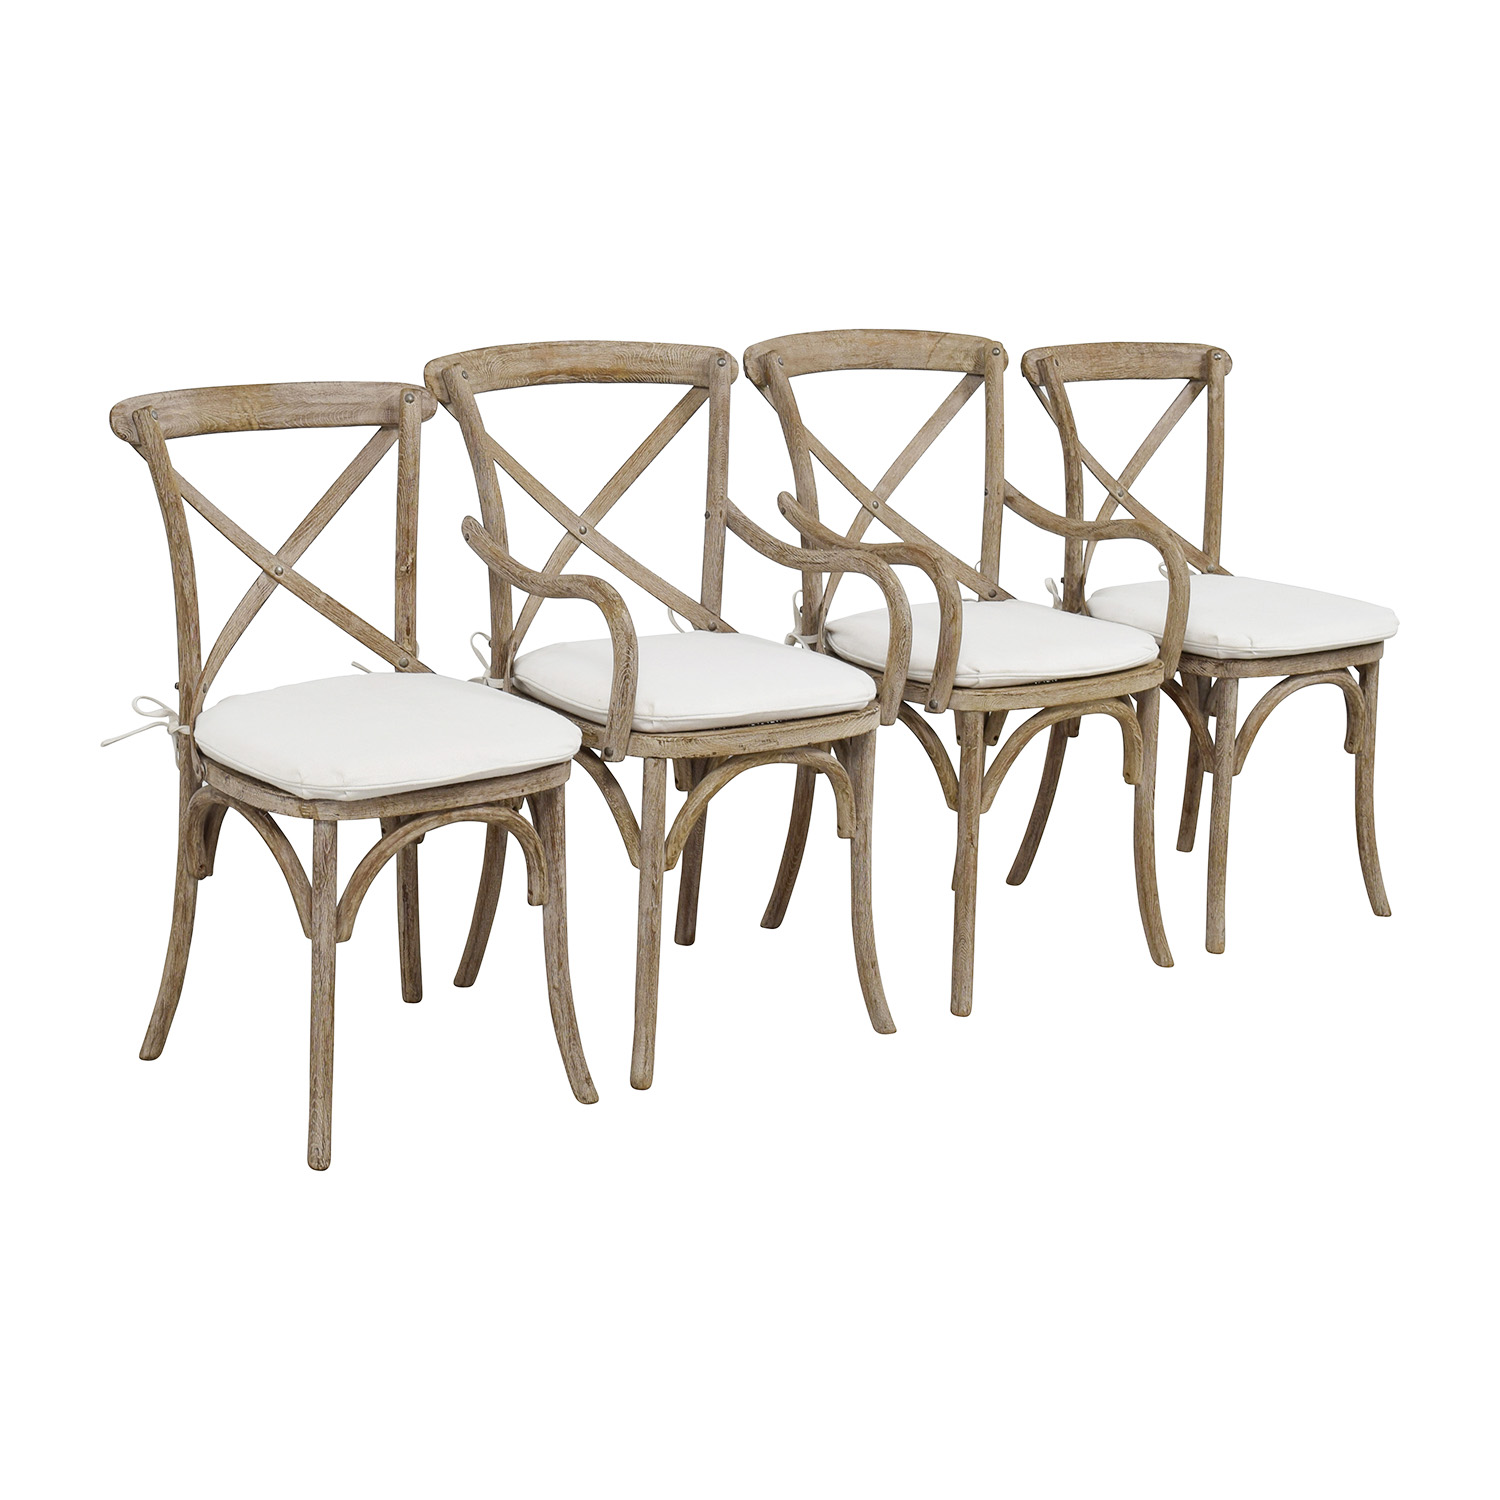 Used Restoration Hardware Outdoor Furniture Simplylushliving. Restoration  Hardware Madeleine Natural Wood Chairs. 59 Off Restoration Hardware  Madeleine Part 81